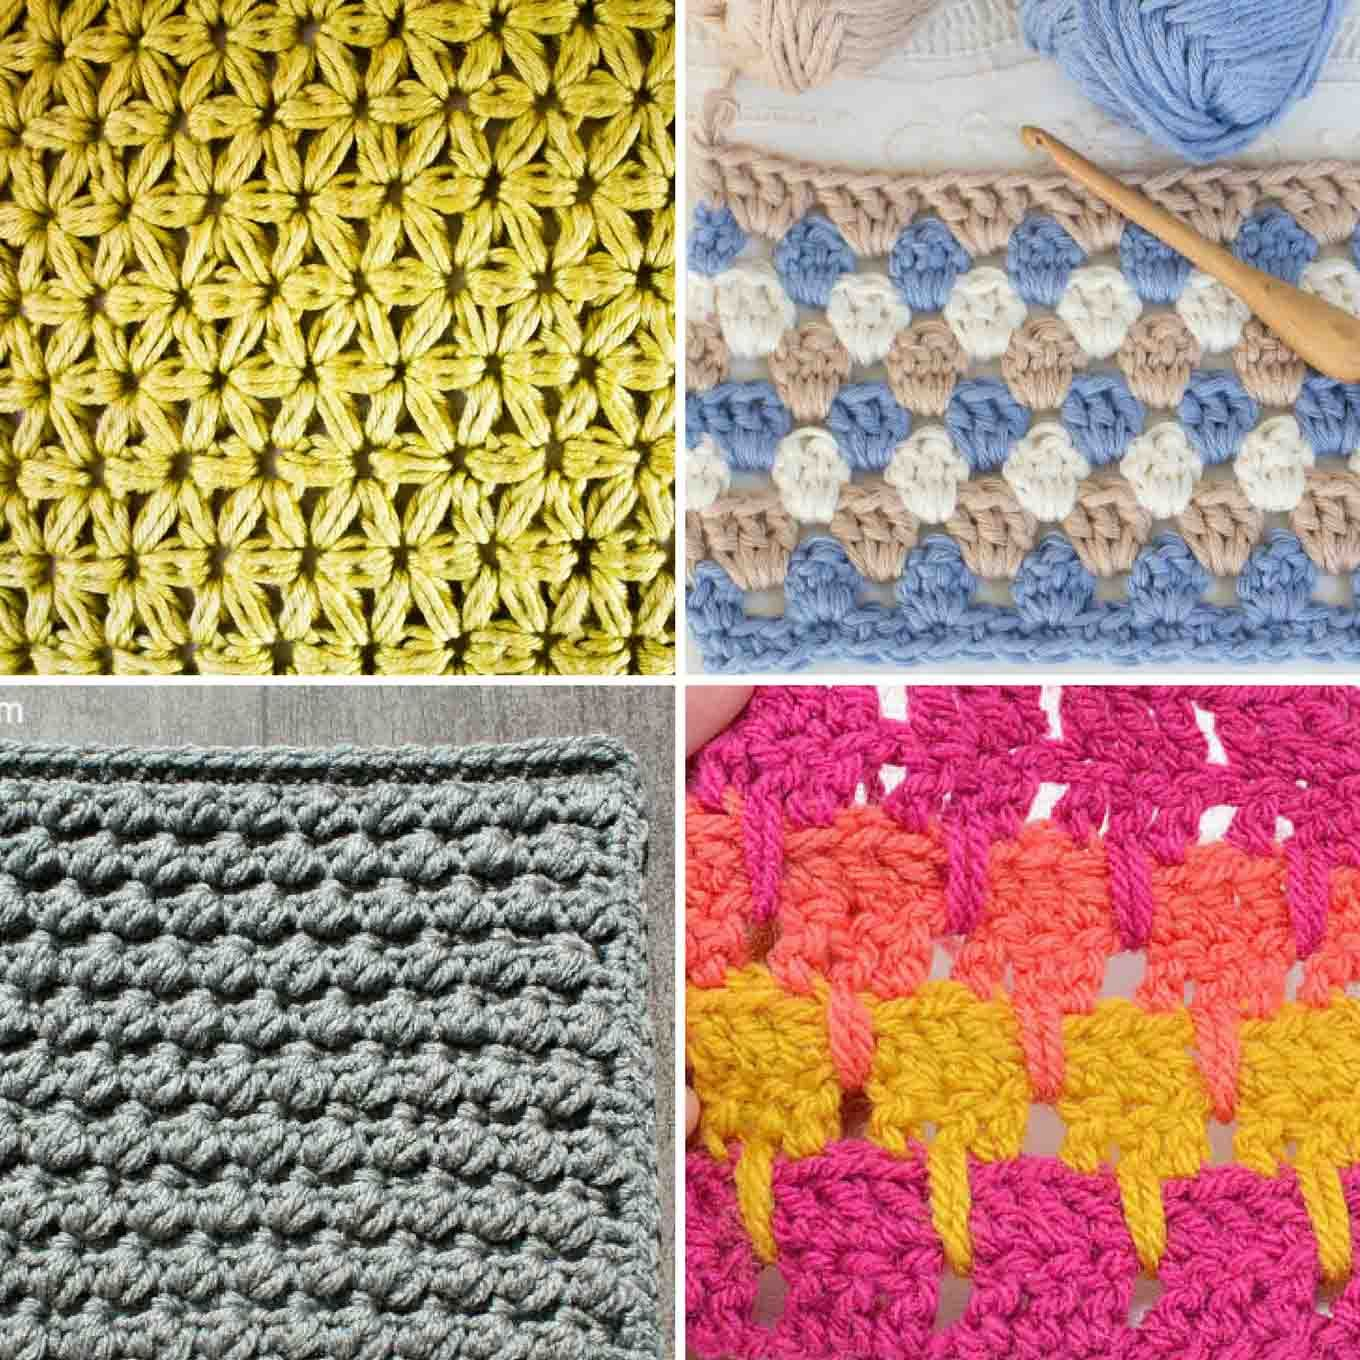 25+ Crochet Stitches For Blankets And Afghans